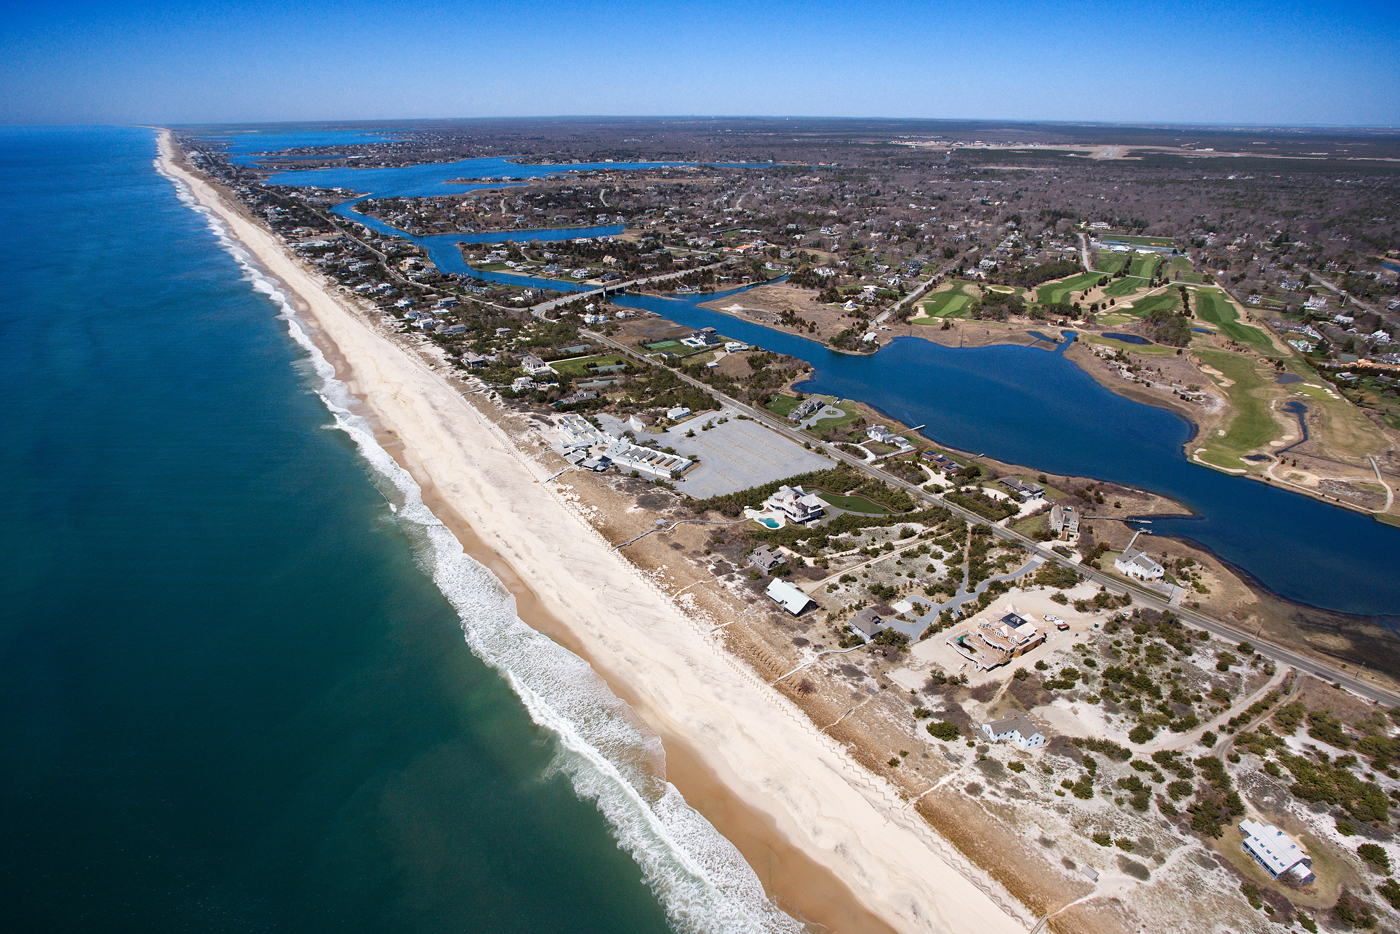 An aerial shot of the Hamptons in Long Island